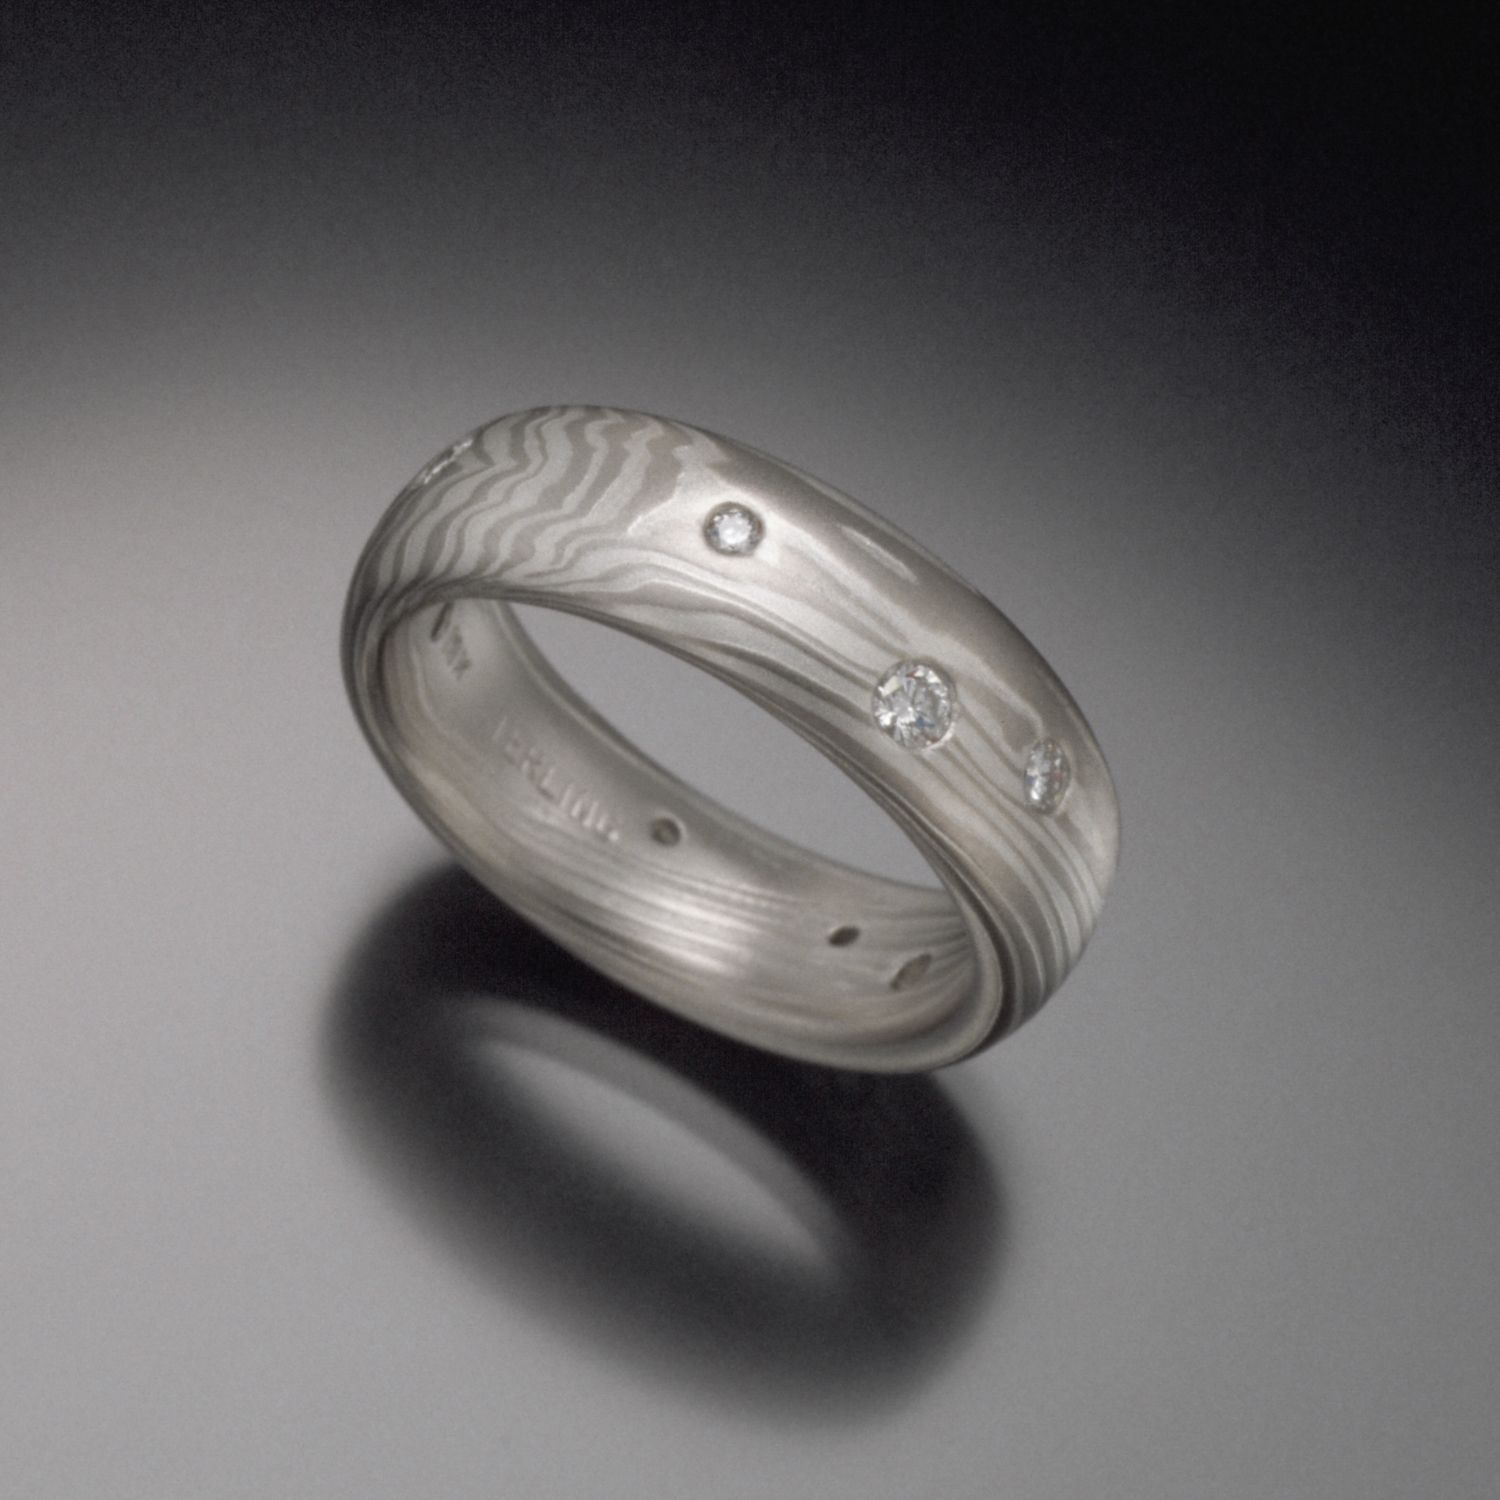 Scattered Diamond Mokume Wedding Band in 18K White Gold and Silver